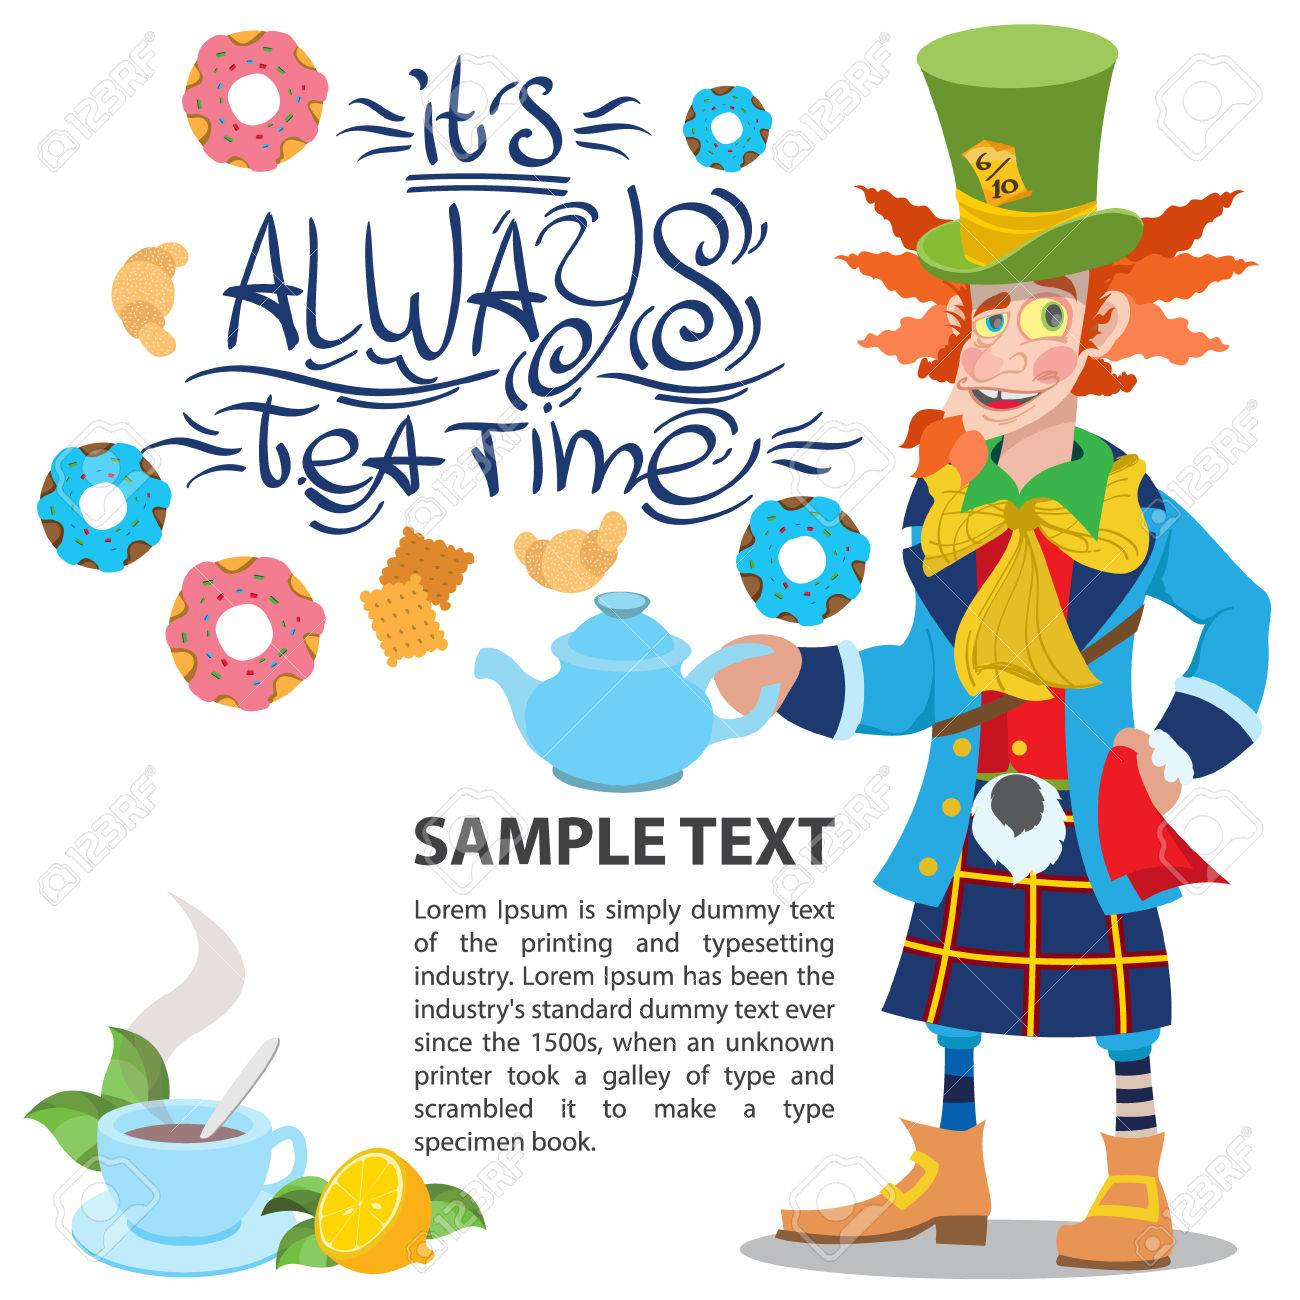 Clipart cup mad hatter tea, Clipart cup mad hatter tea Transparent FREE for  download on WebStockReview 2020